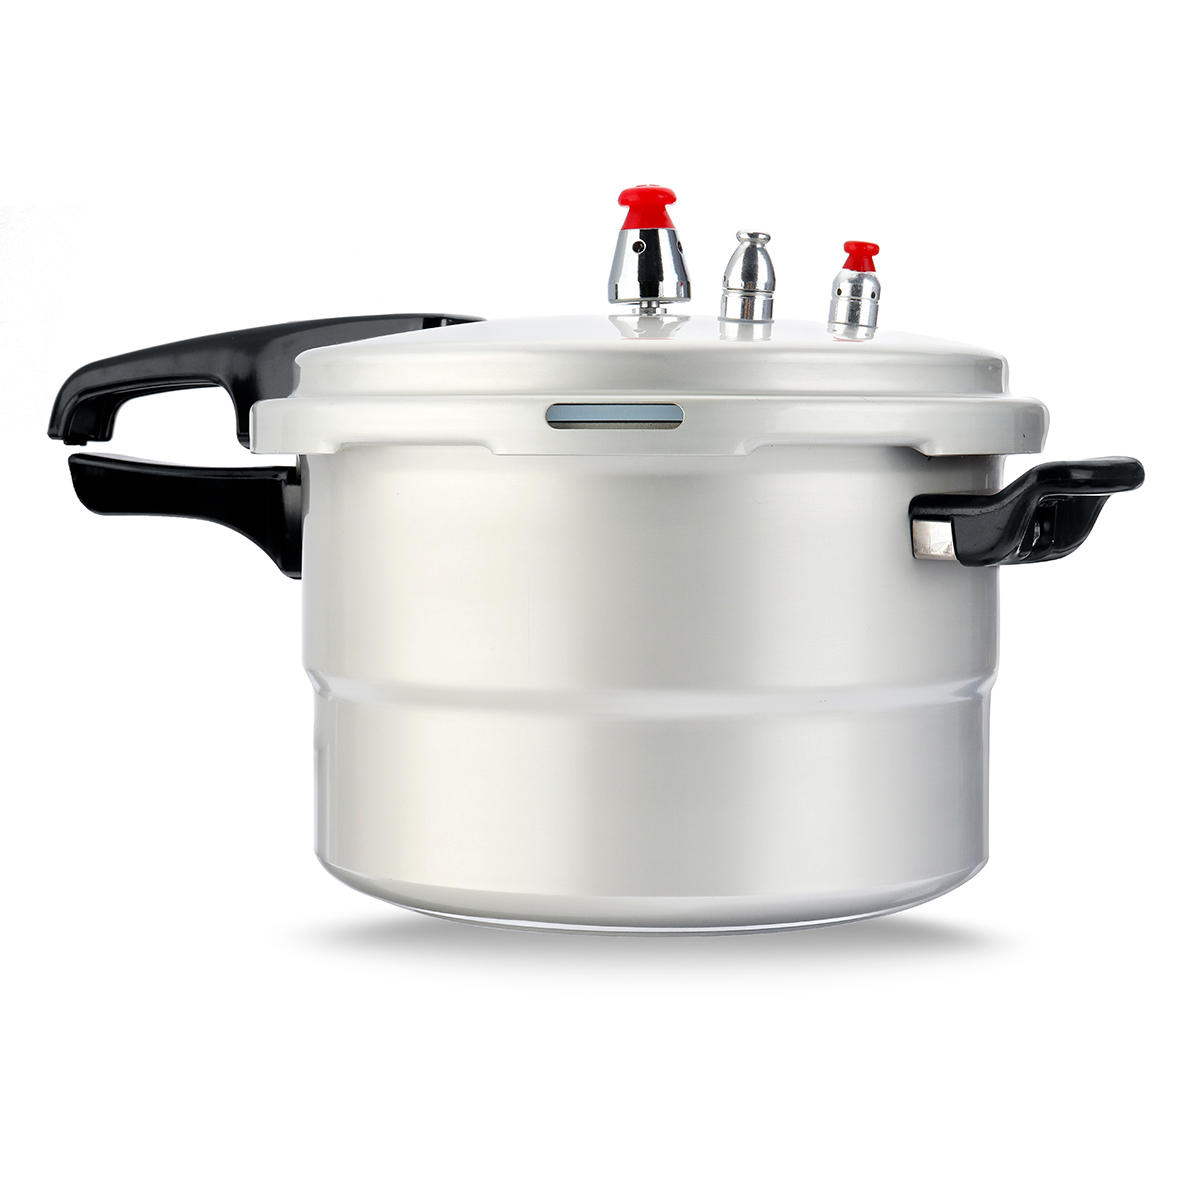 18/20/22CM Pressure Cooker Sets Double Bottom Household Kitchen Pressure Cooker Beans Meats Vegetables Soups Cooking Tools